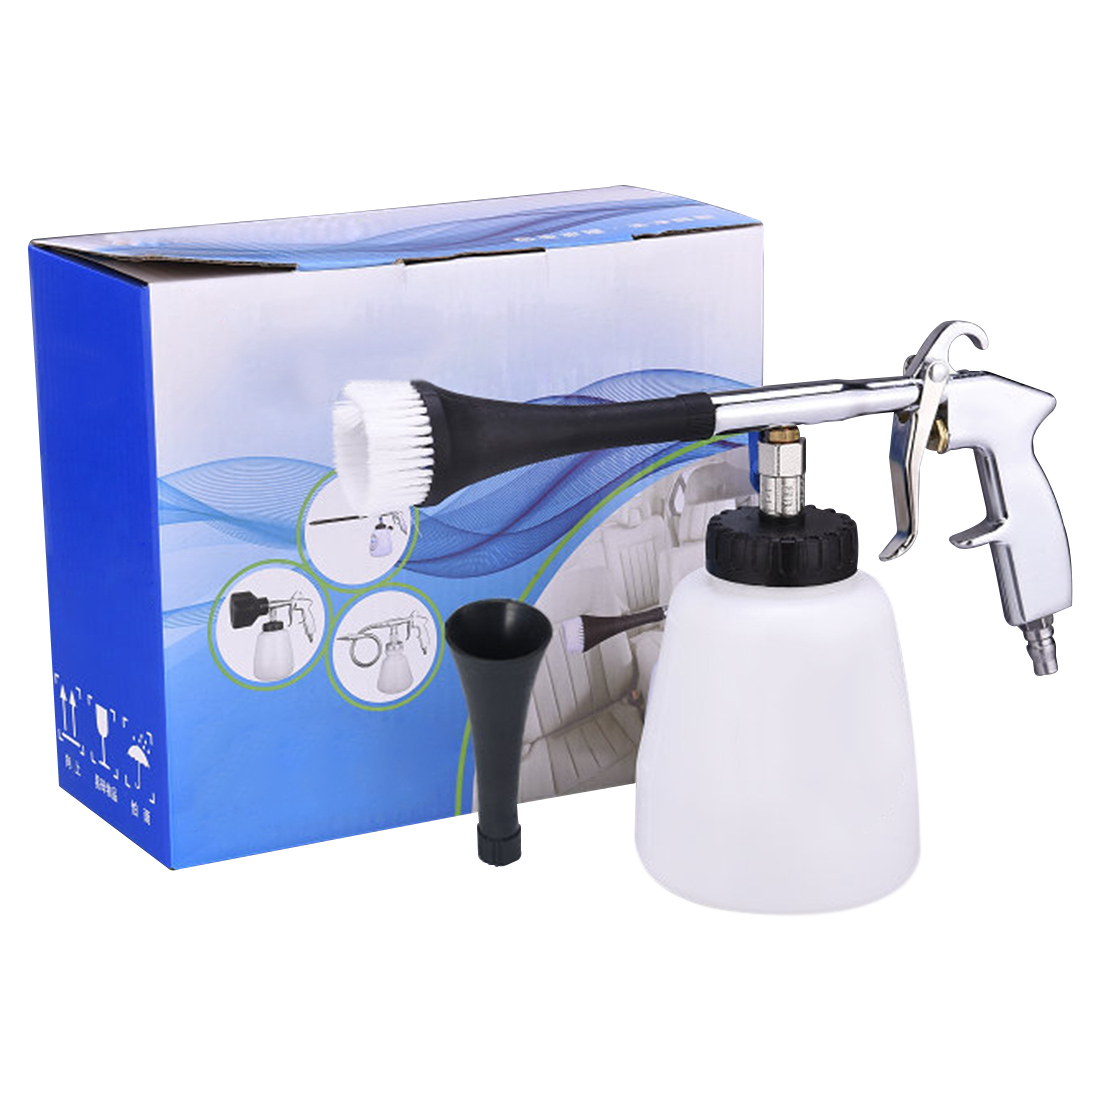 Image 4 - 2018 Car interior dry cleaning machine Tornado cleaning gun Cleaning the gap High pressure washer car cleaning tool Spray gun-in Sponges, Cloths & Brushes from Automobiles & Motorcycles